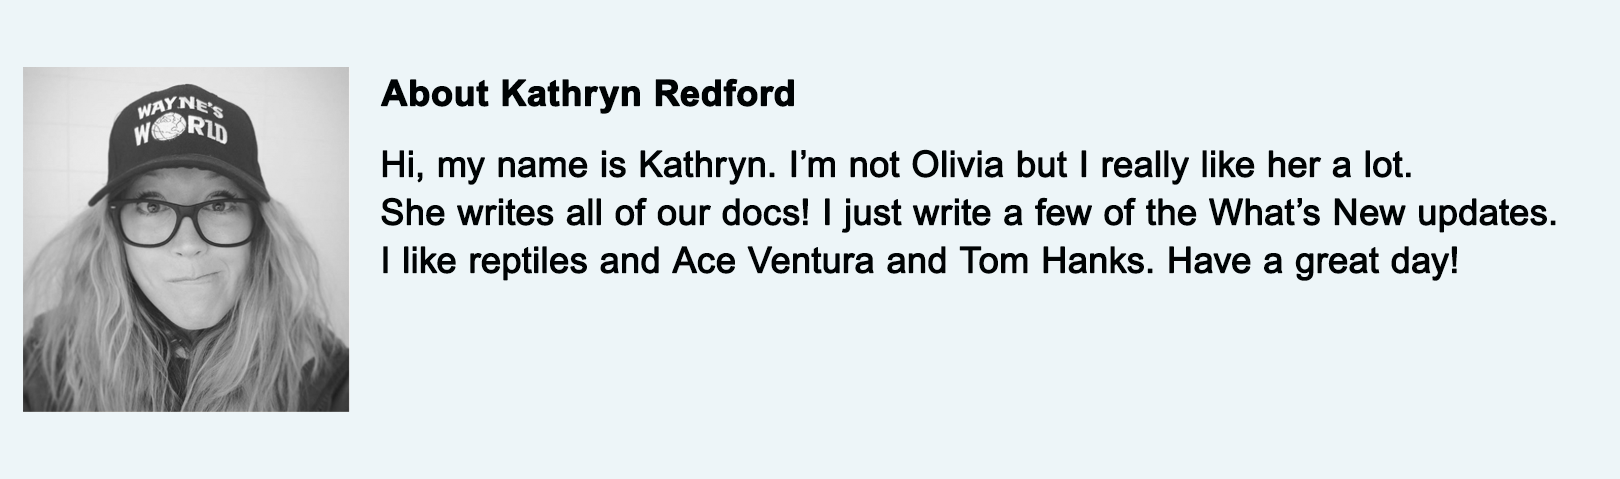 About_The_Author__Kathryn_Redford_.png